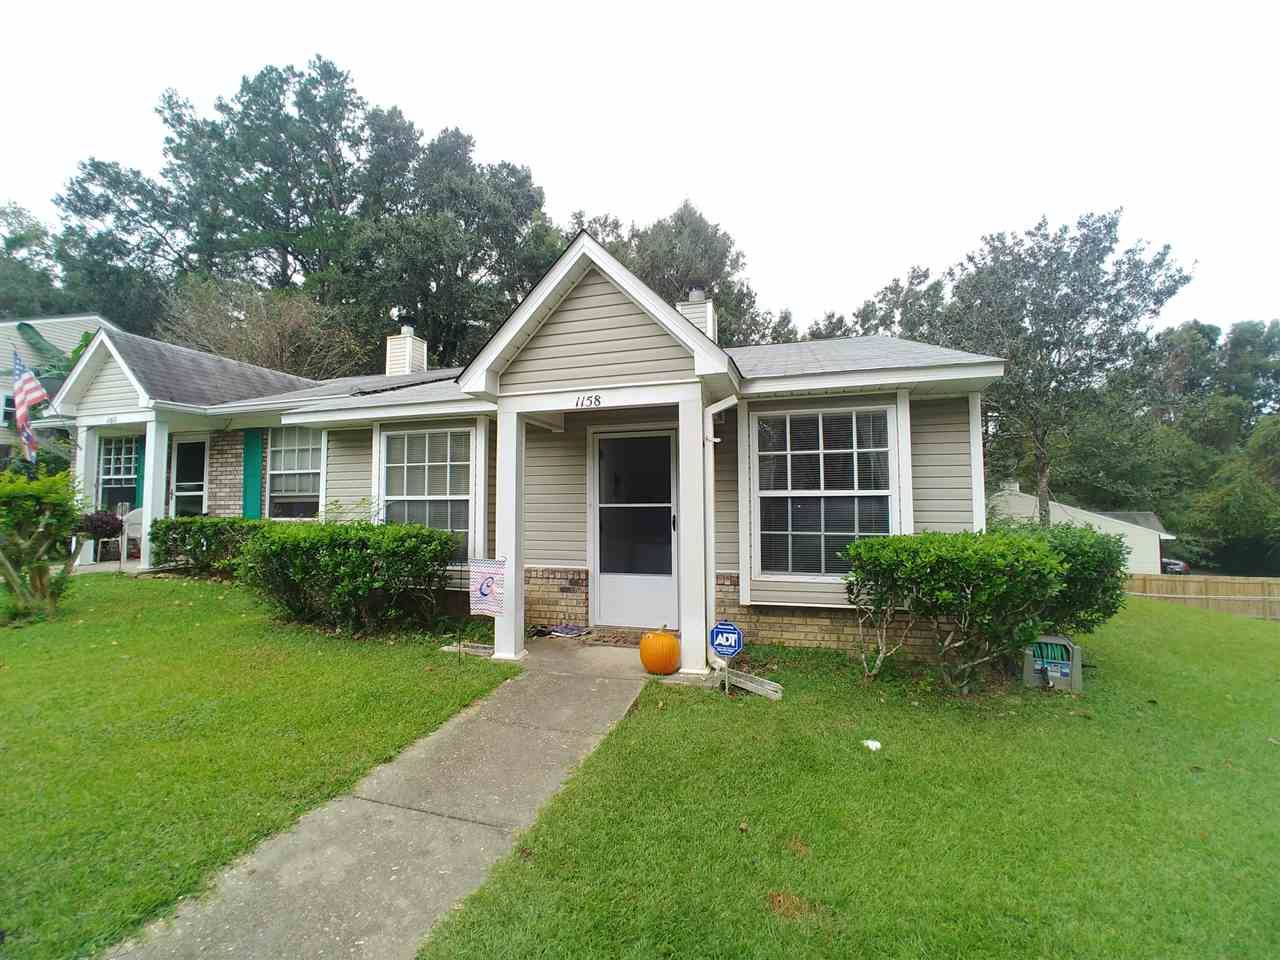 Photo for 1158 Copper Creek Drive, TALLAHASSEE, FL 32311 (MLS # 314255)